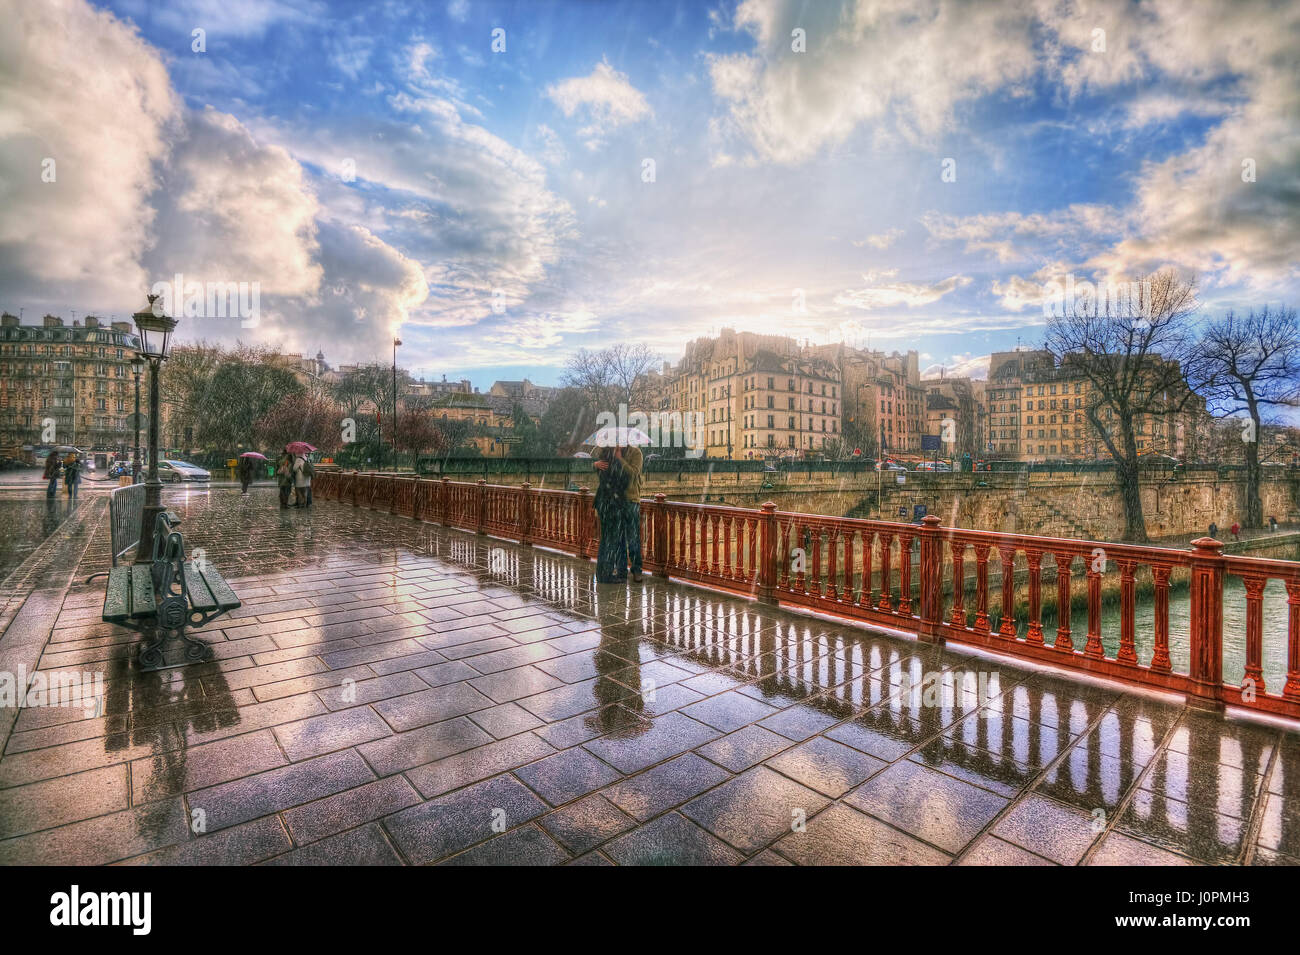 Lovers in the rain on the Pont au Double. France. Paris - Stock Image